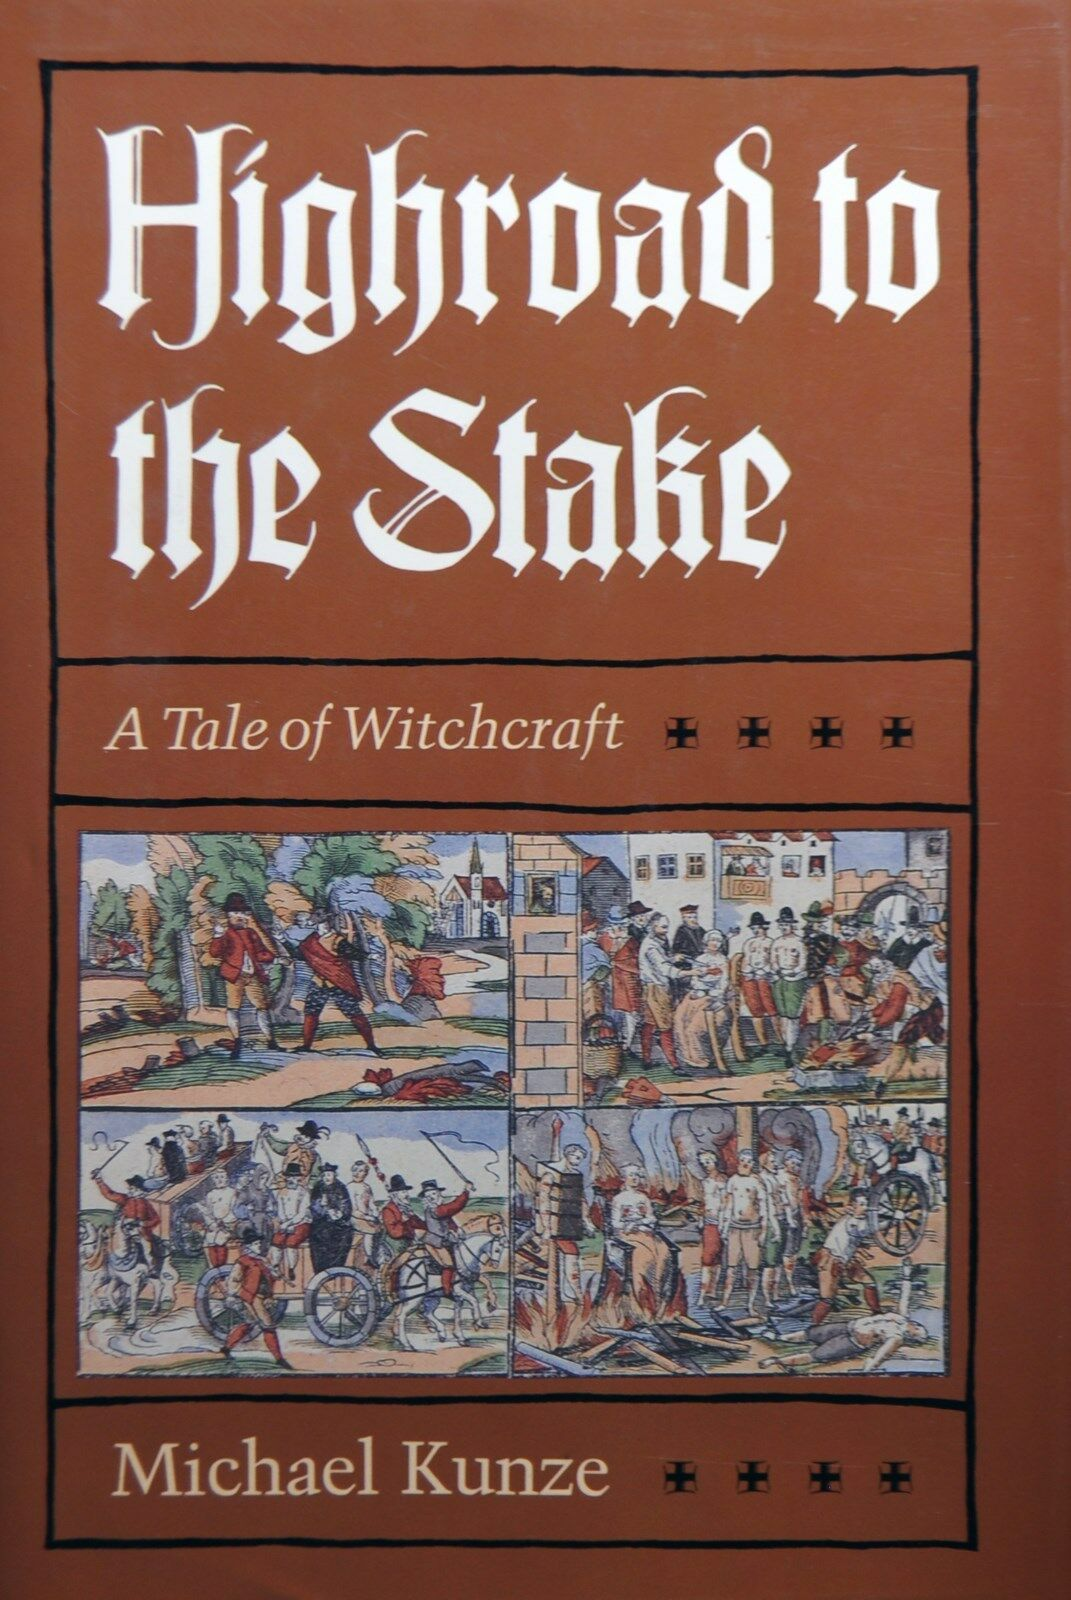 Highroad to the Stake: A Tale of Witchcraft, by Michael Kunze